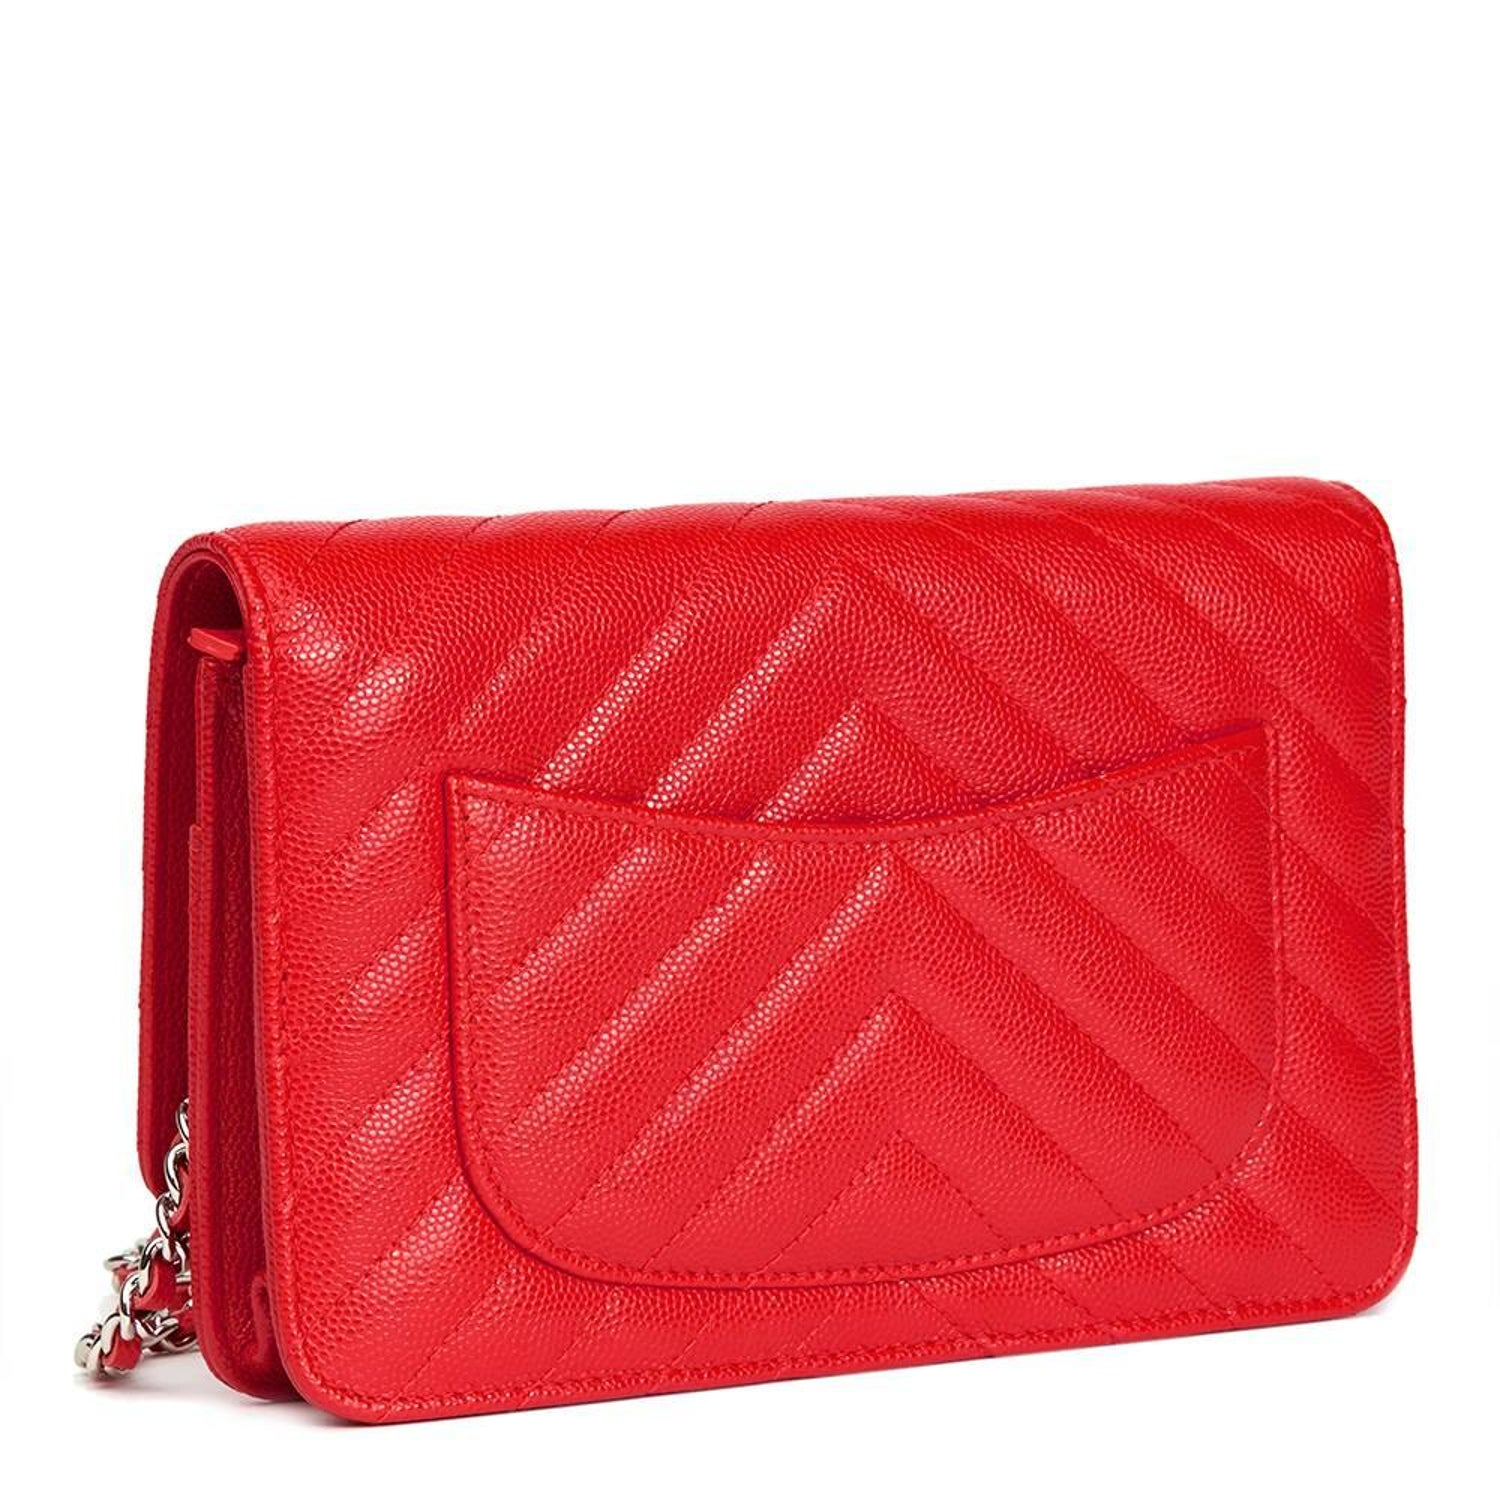 bfb336d54497 2017 Chanel Red Chevron Quilted Caviar Leather Wallet-On-Chain WOC at  1stdibs